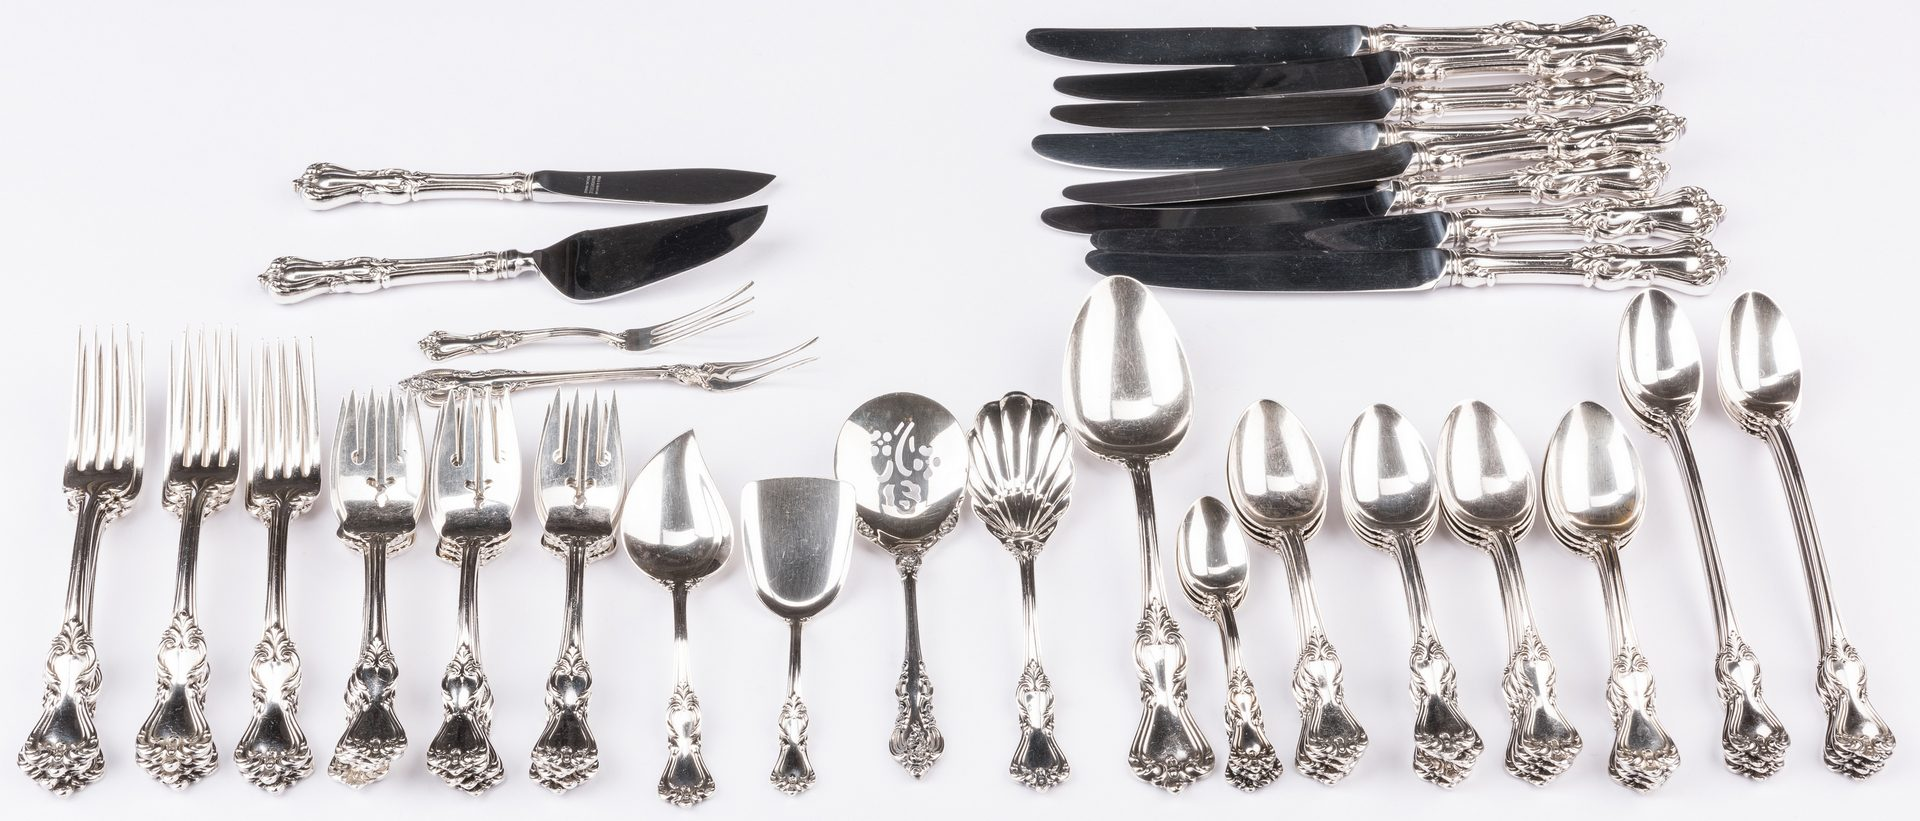 Lot 402: Reed & Barton Marlborough flatware, 63 pcs plus 2 others